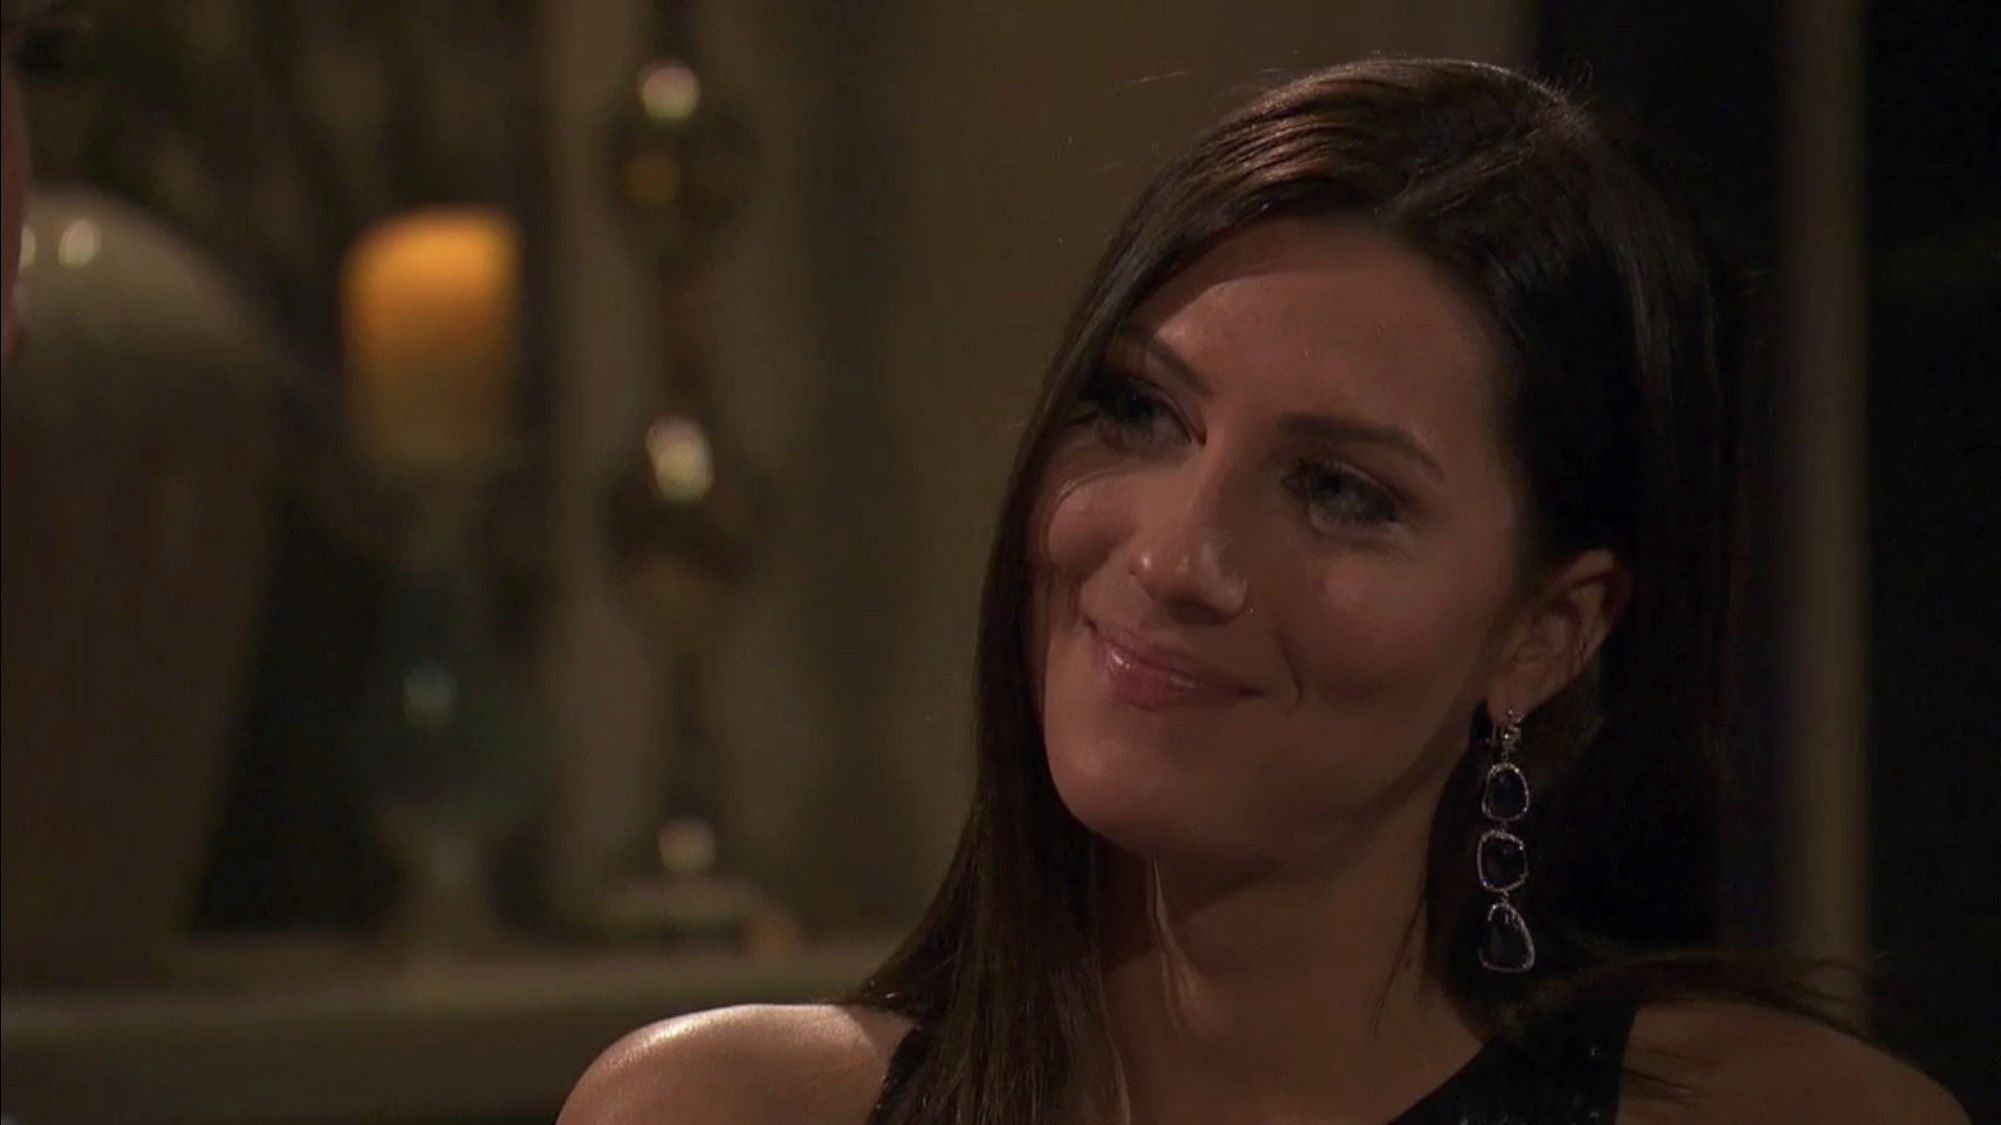 Bachelorette 14 - Becca Kufrin - ScreenCaps - NO Discussion - *Sleuthing Spoilers* 2c5b5710